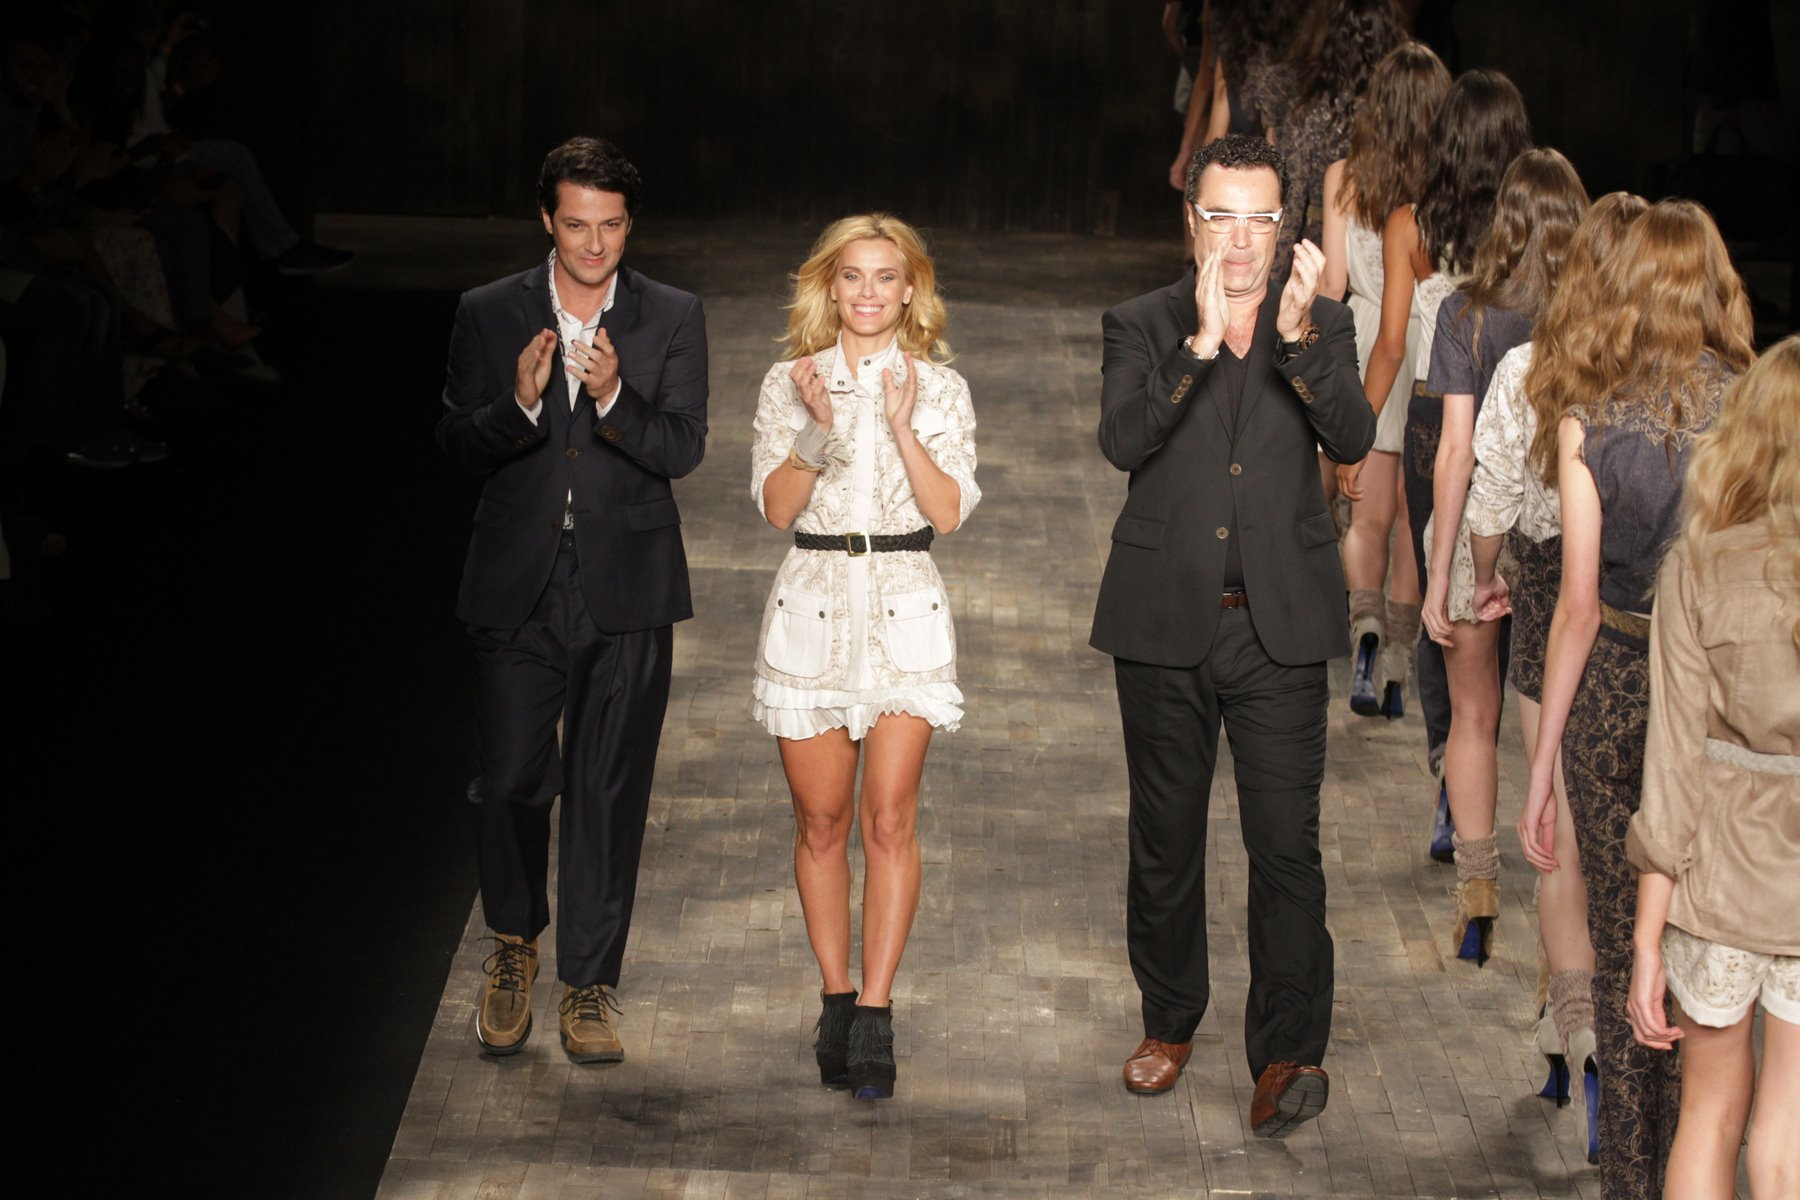 Desfile da grife TNG no Fashion Rio